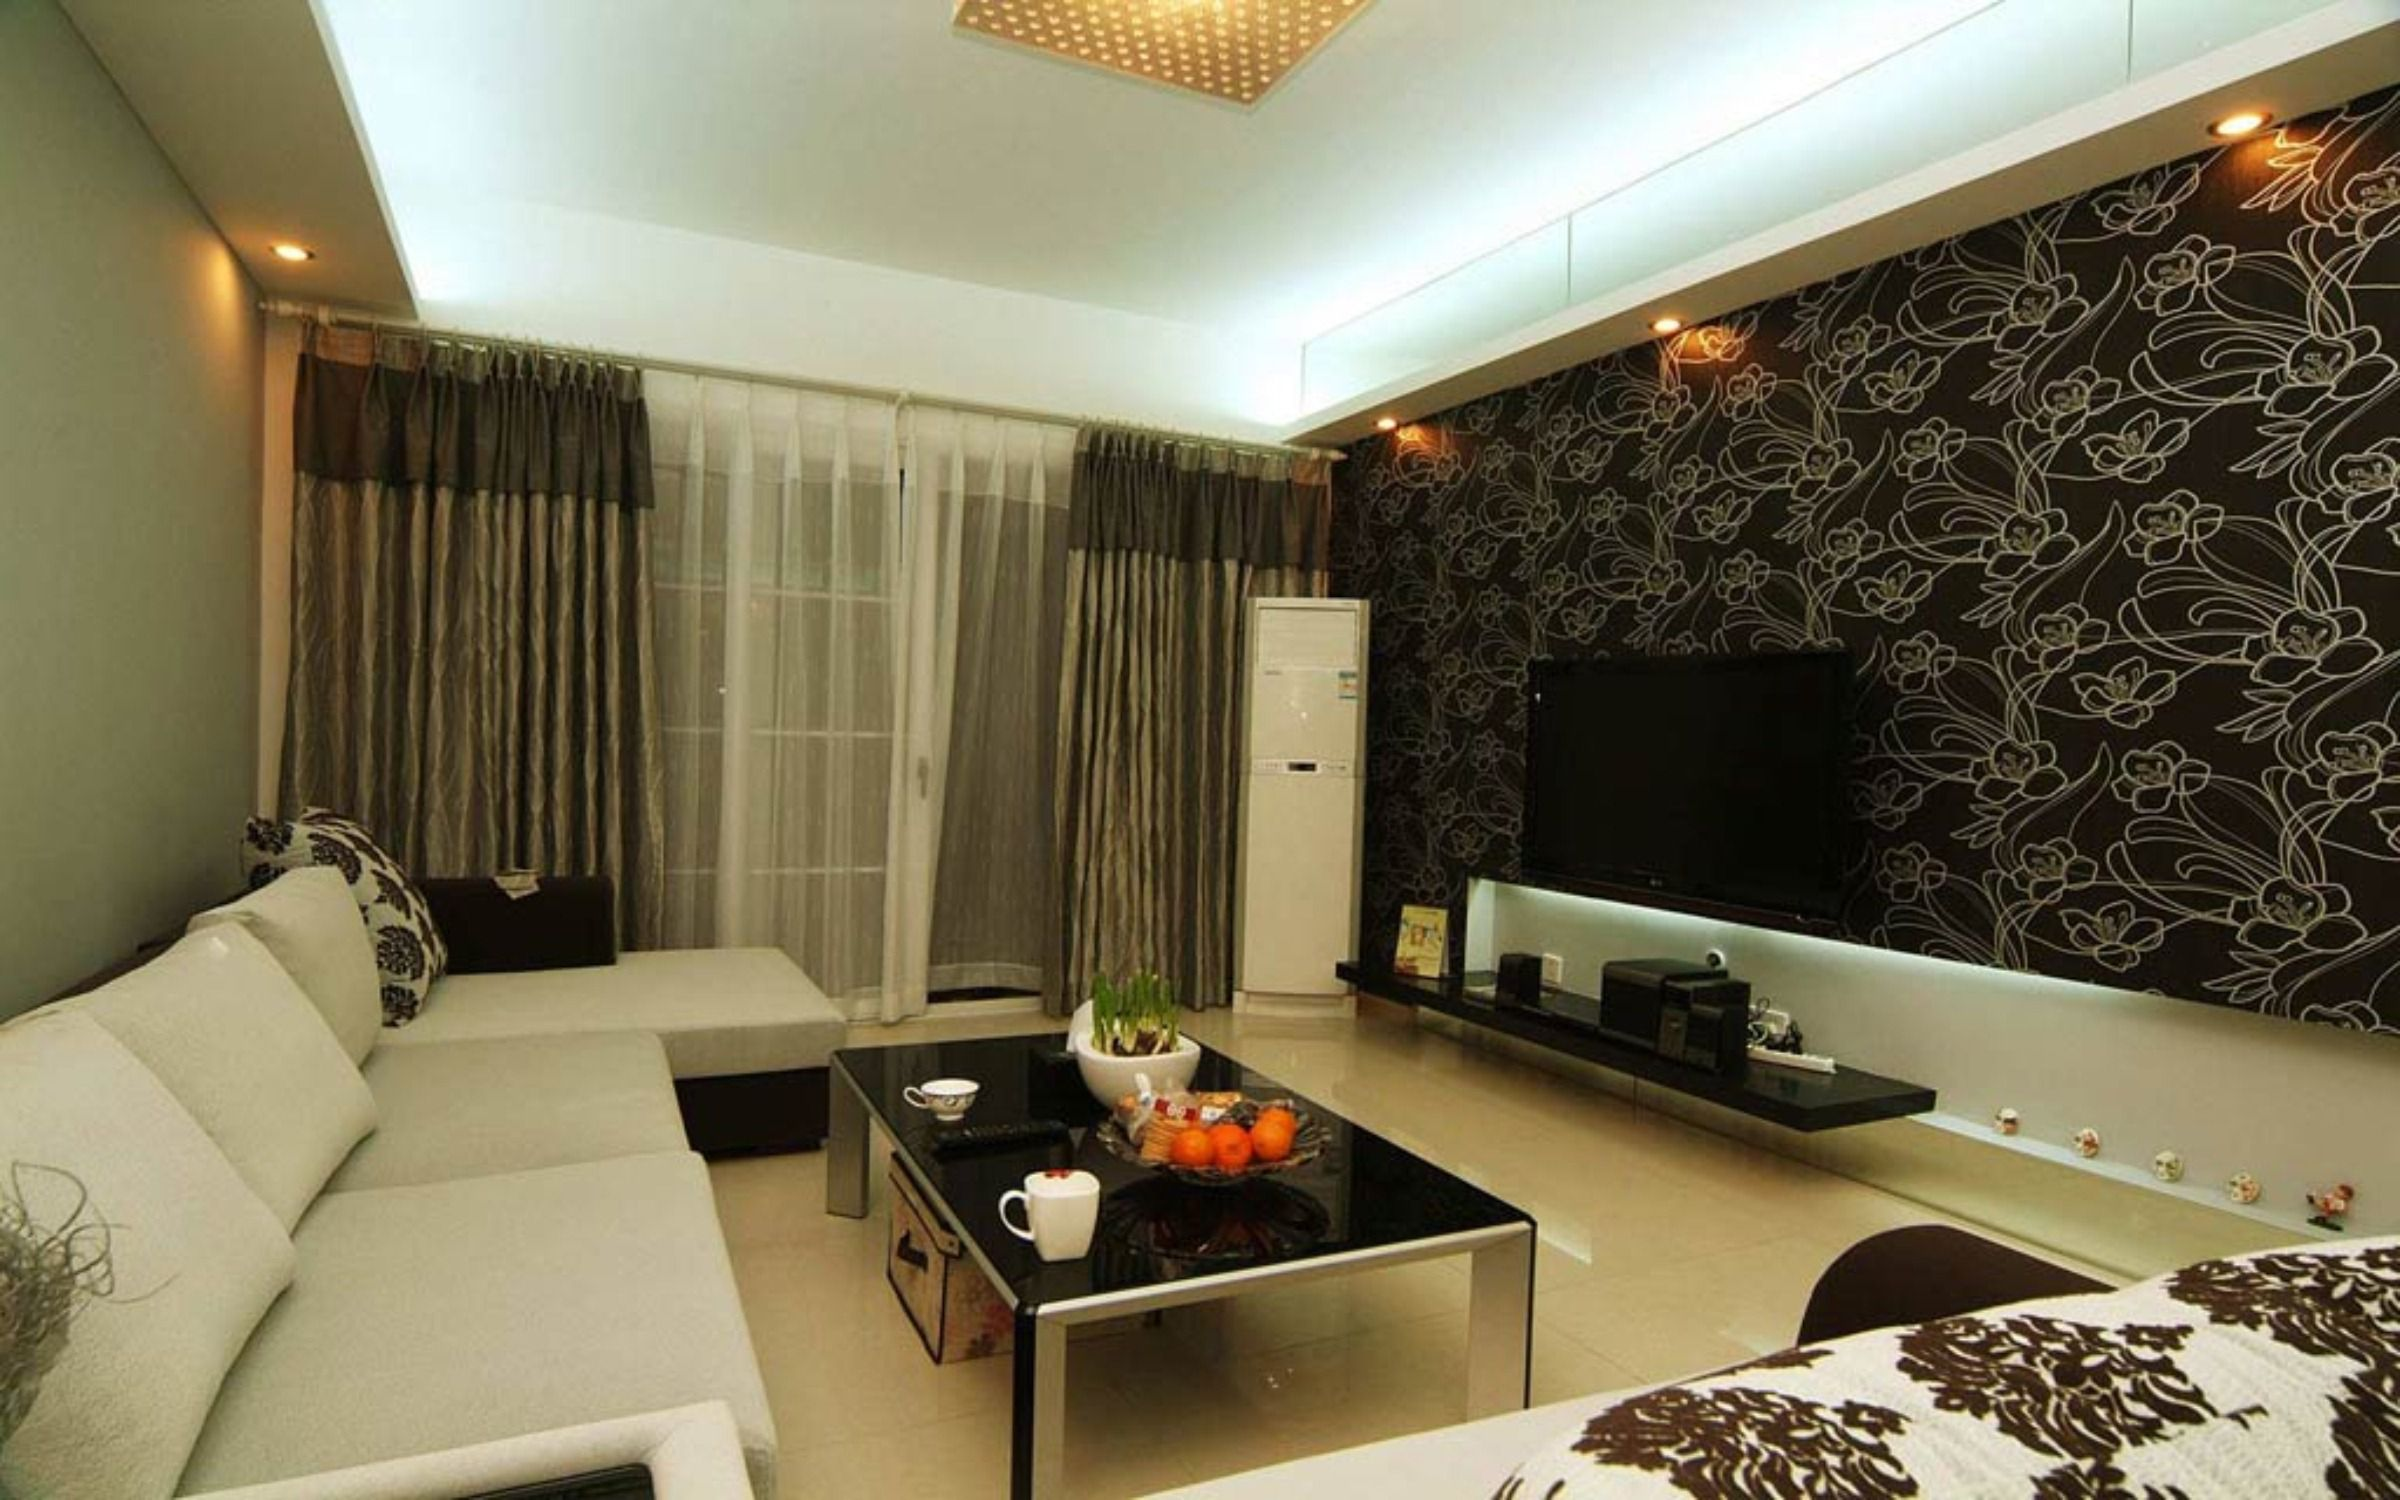 Decorate Living Room Design Ideas with Flowery Wallpaper and Black Coffee Table near Grey Sectional Sofa